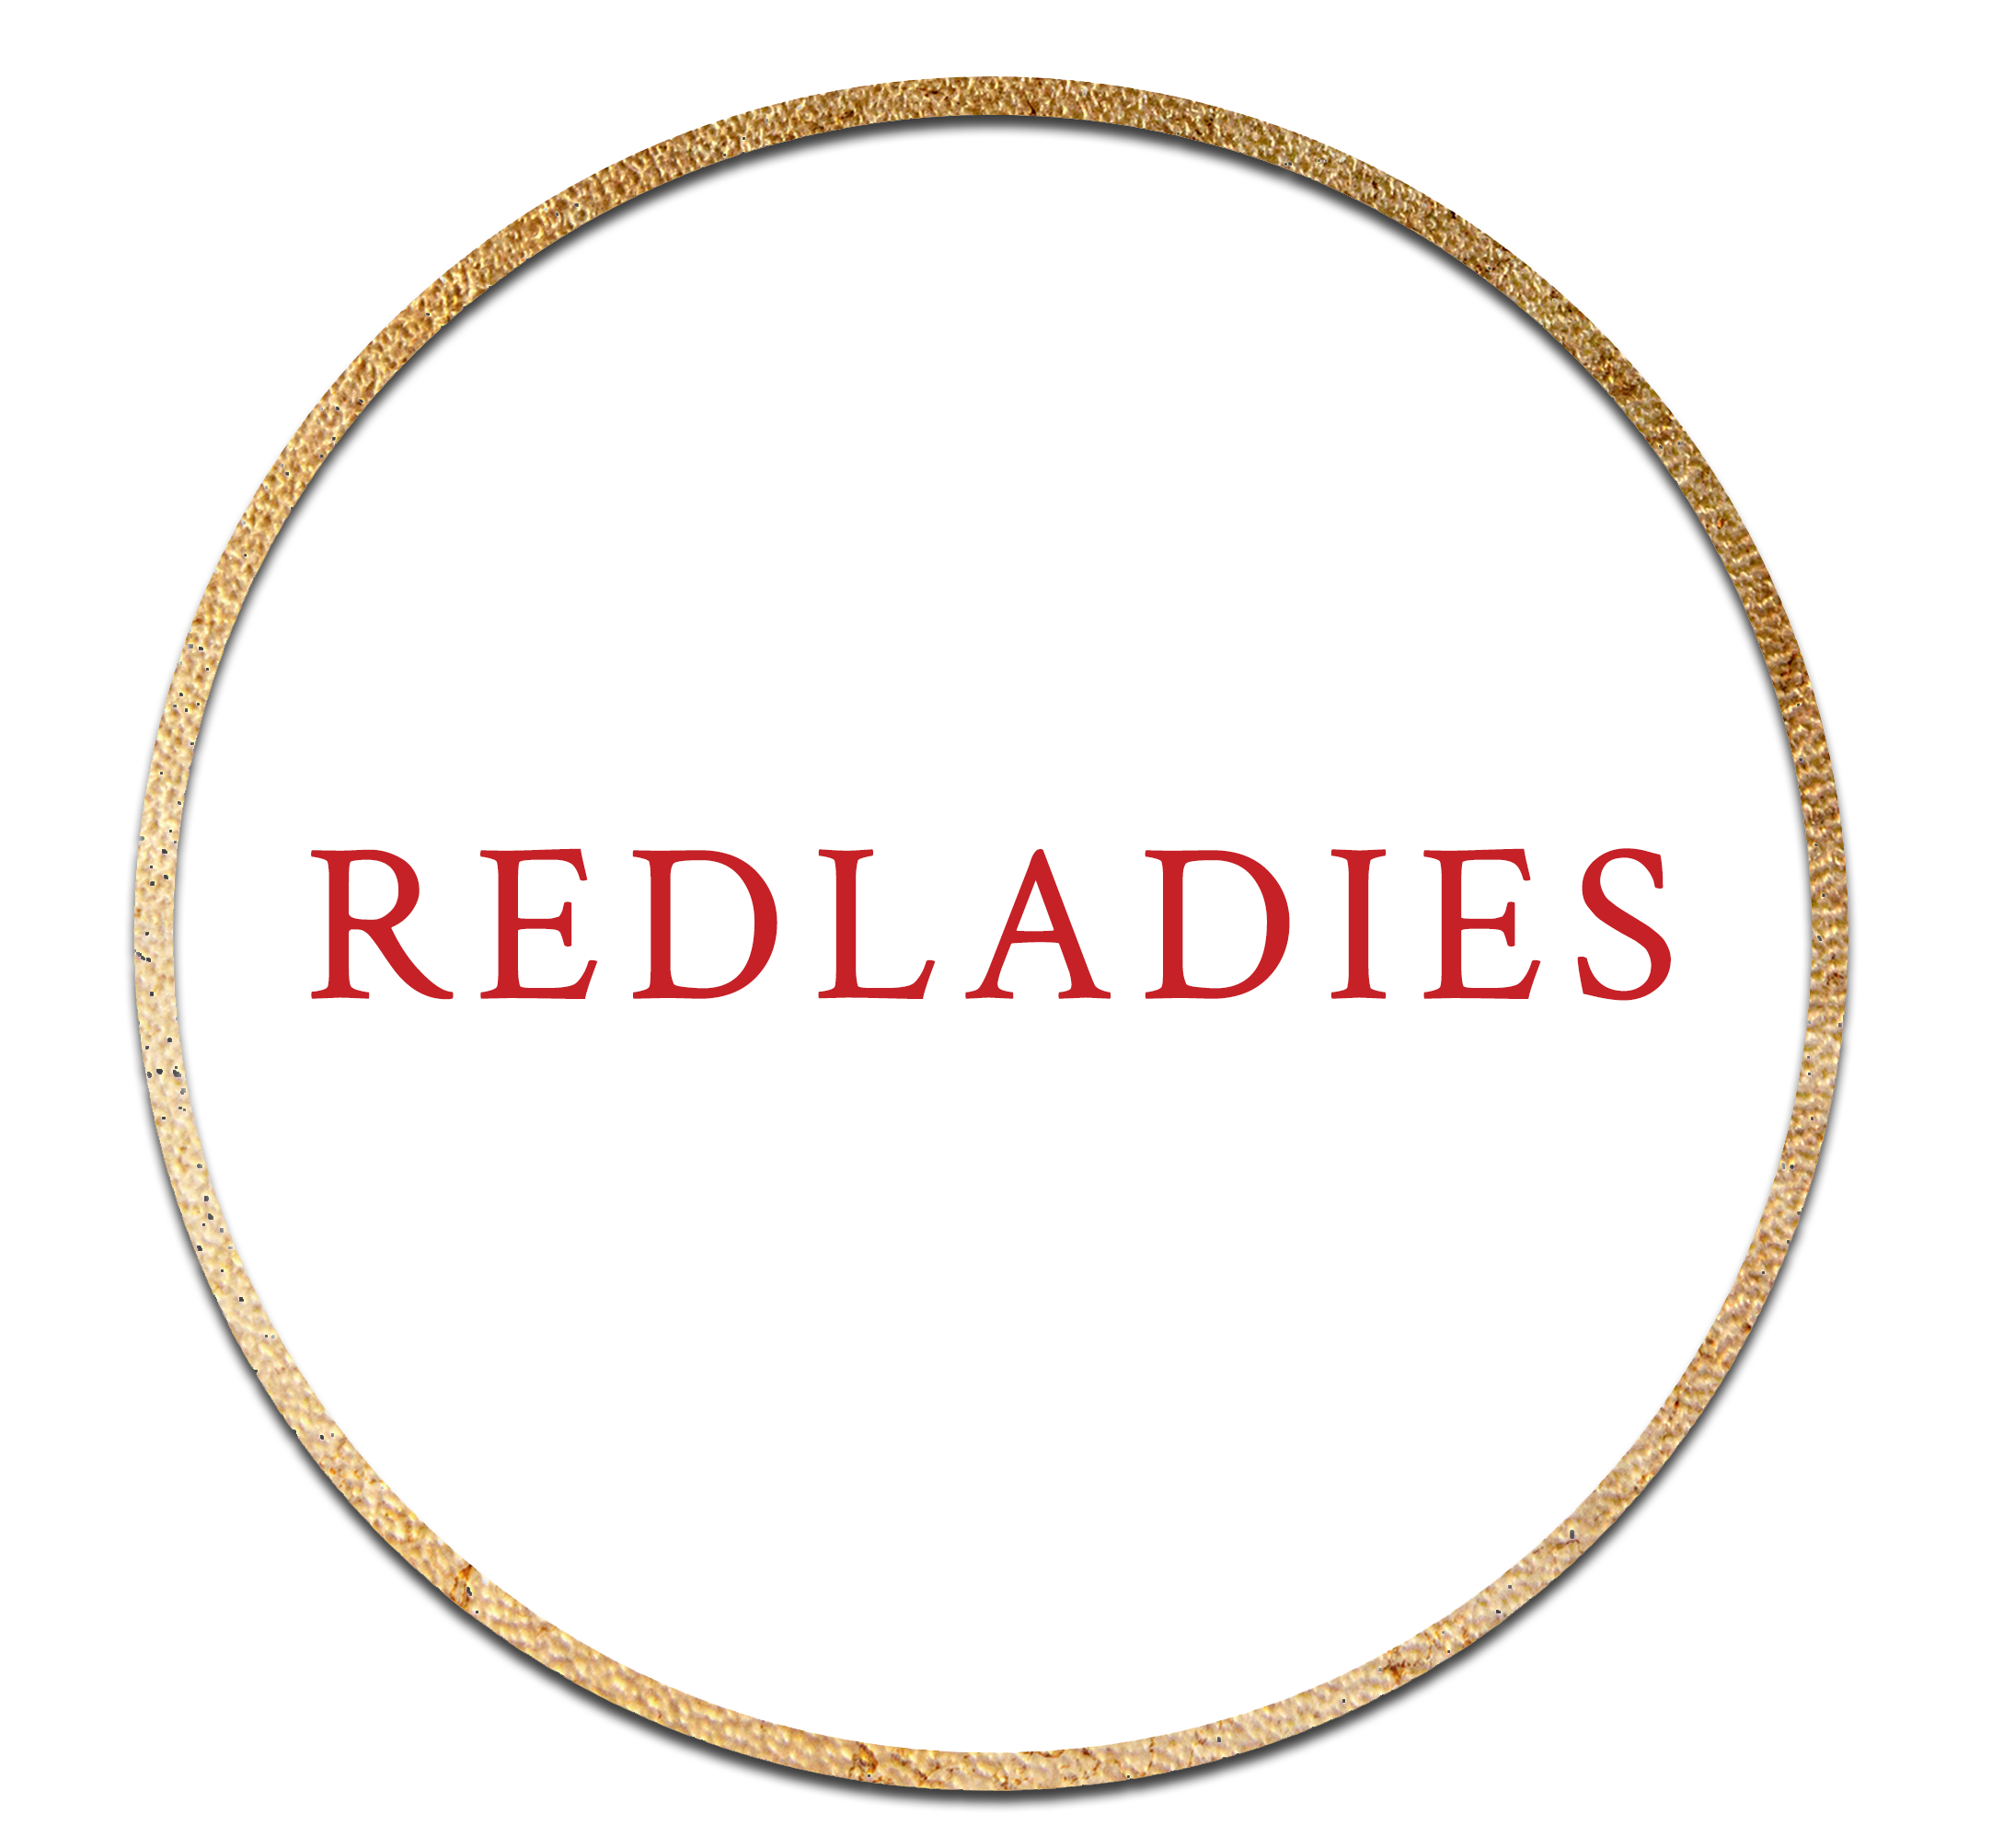 redladies-home.png